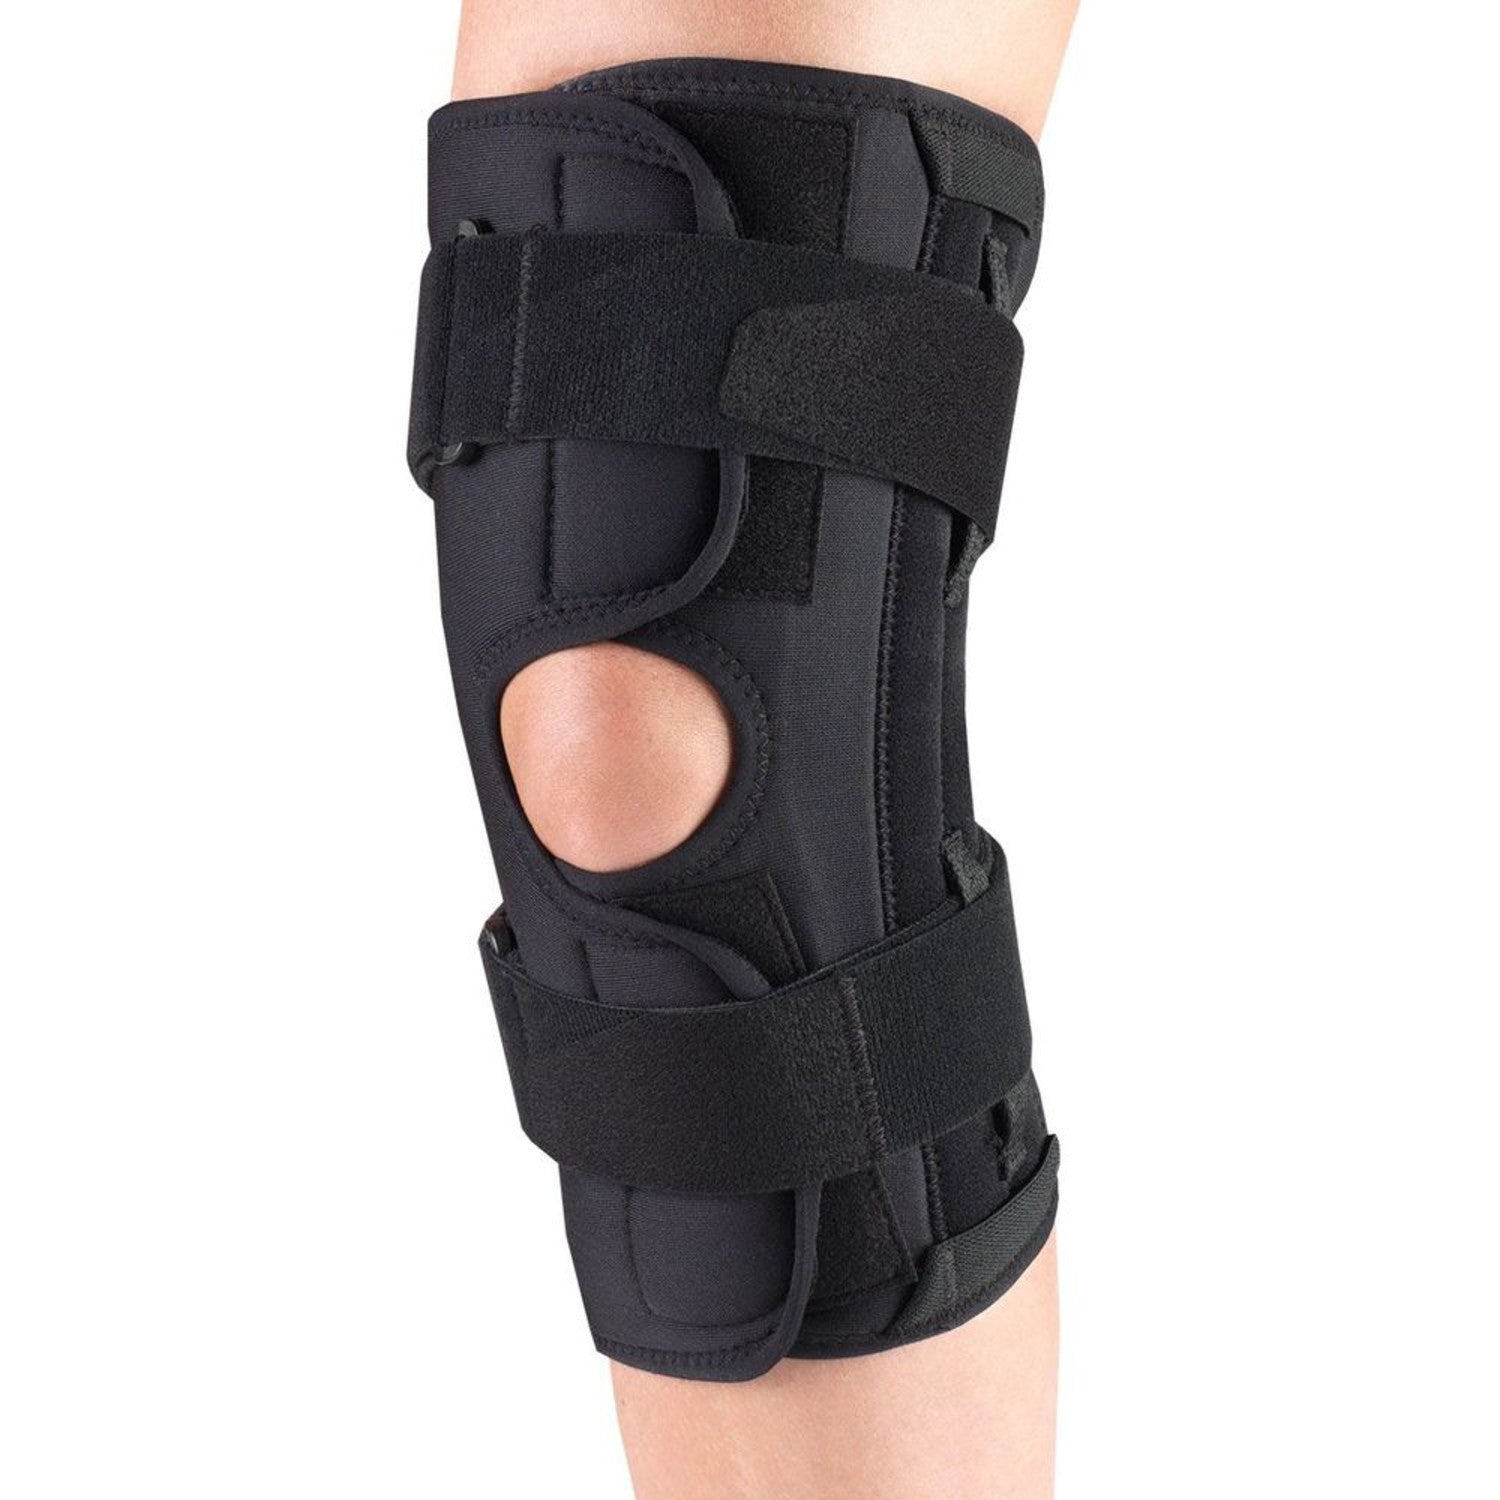 --Front of ORTHOTEX KNEE STABILIZER WRAP - SPIRAL STAYS--